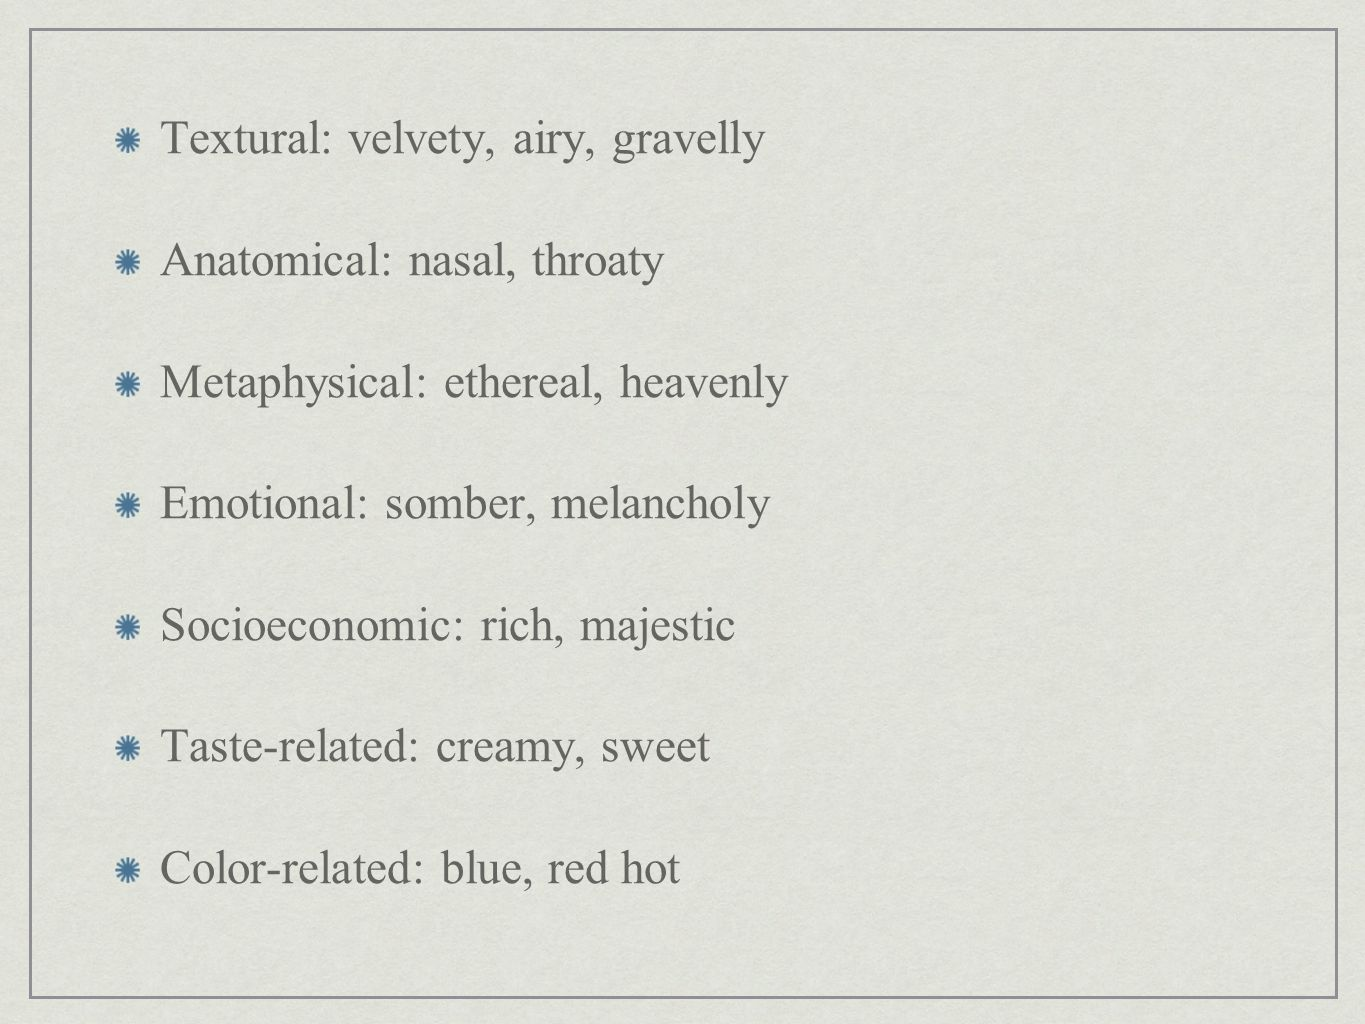 Textural: velvety, airy, gravelly Anatomical: nasal, throaty Metaphysical: ethereal, heavenly Emotional: somber, melancholy Socioeconomic: rich, majestic Taste-related: creamy, sweet Color-related: blue, red hot